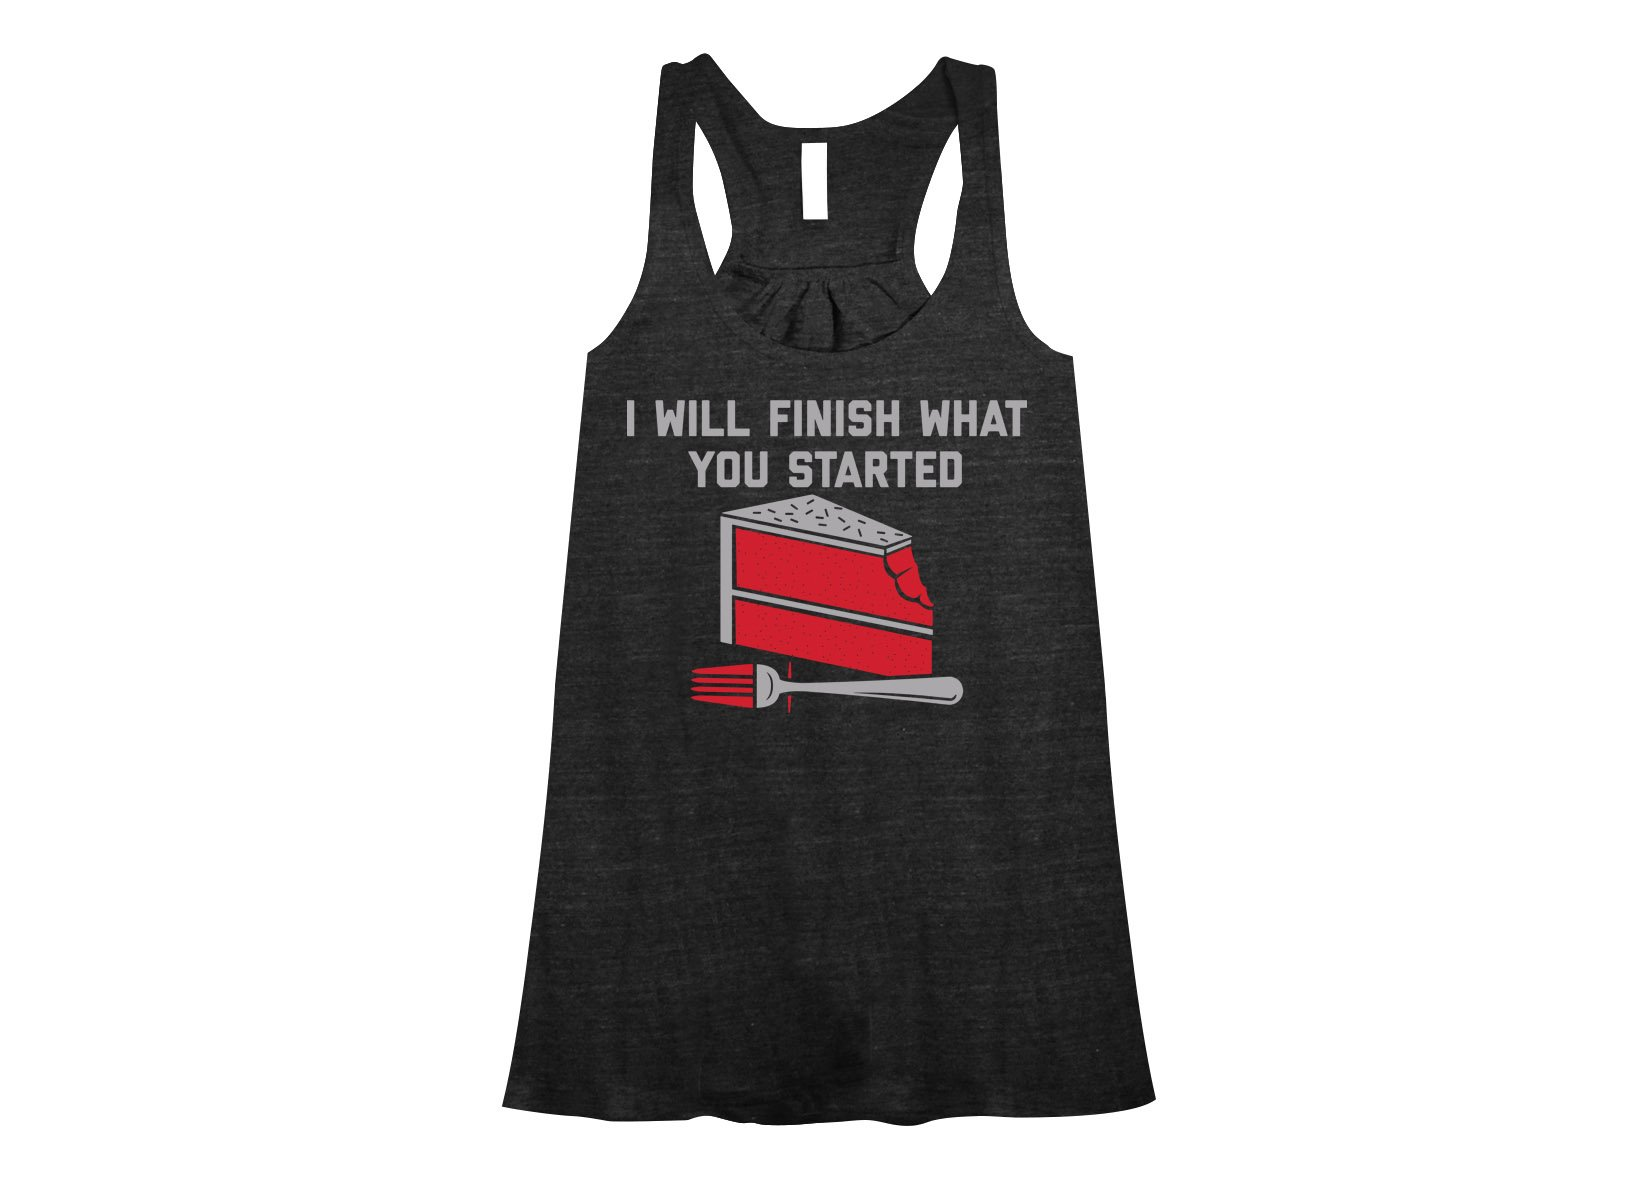 I Will Finish What You Started on Womens Tanks T-Shirt